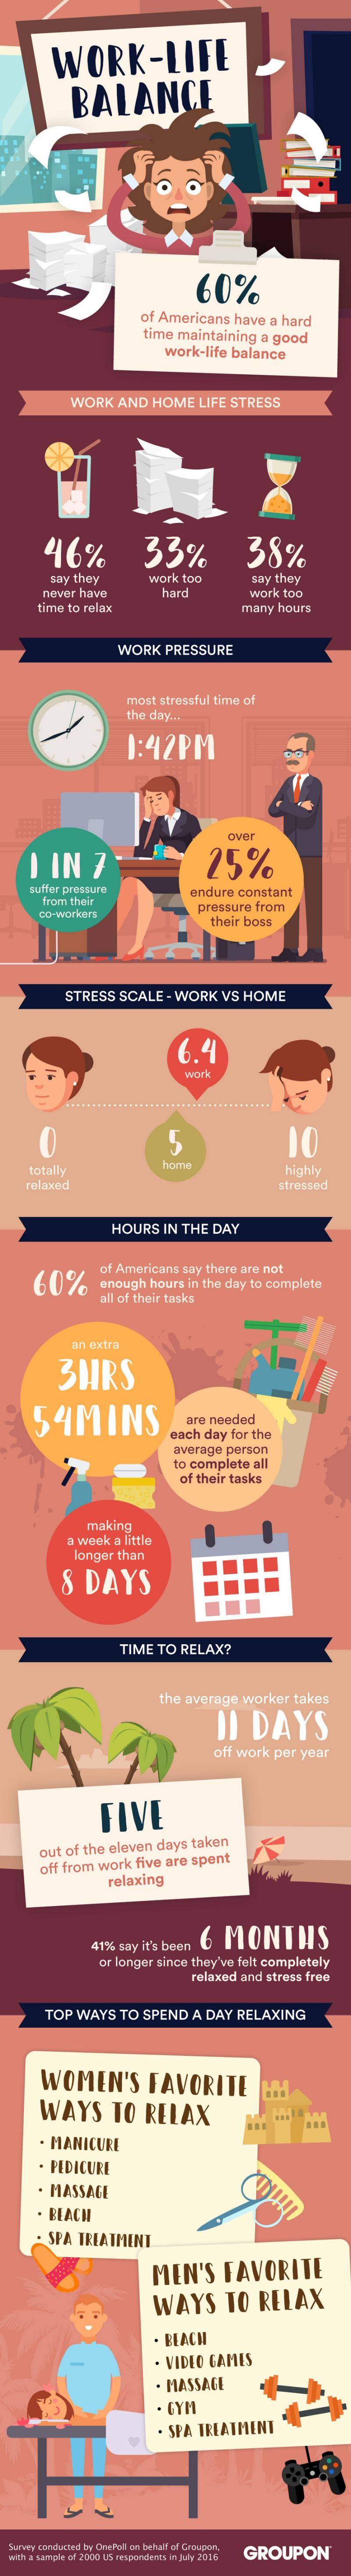 digital-marketing-infographics-15-work-life-balance.jpg